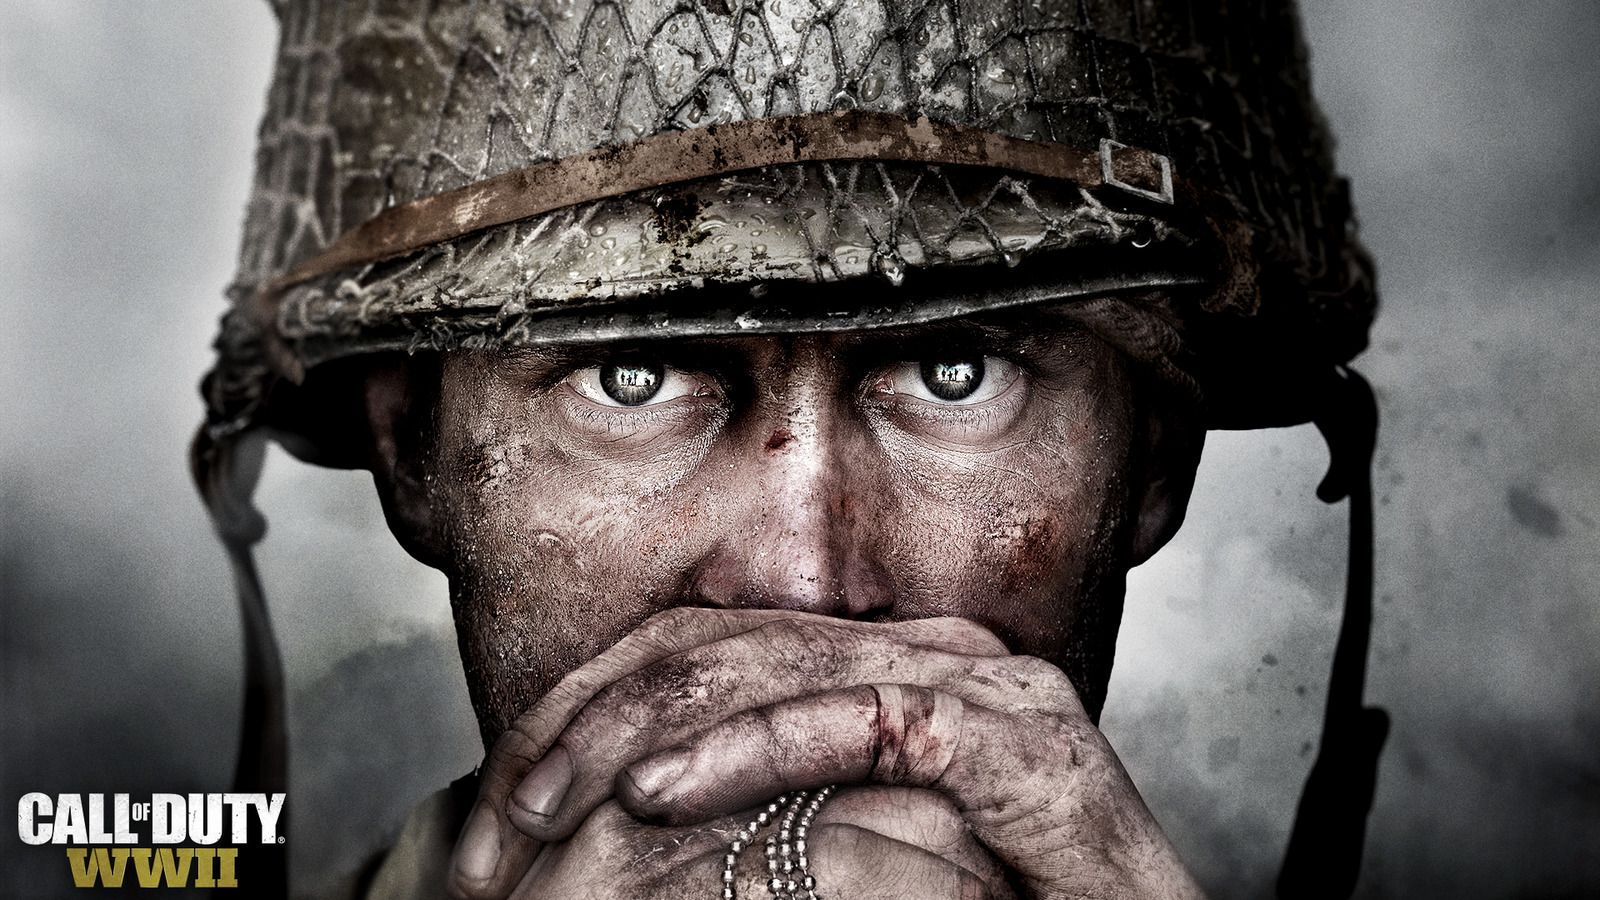 Call of Duty: WWII marketing leak dates the game, outs co-op mode